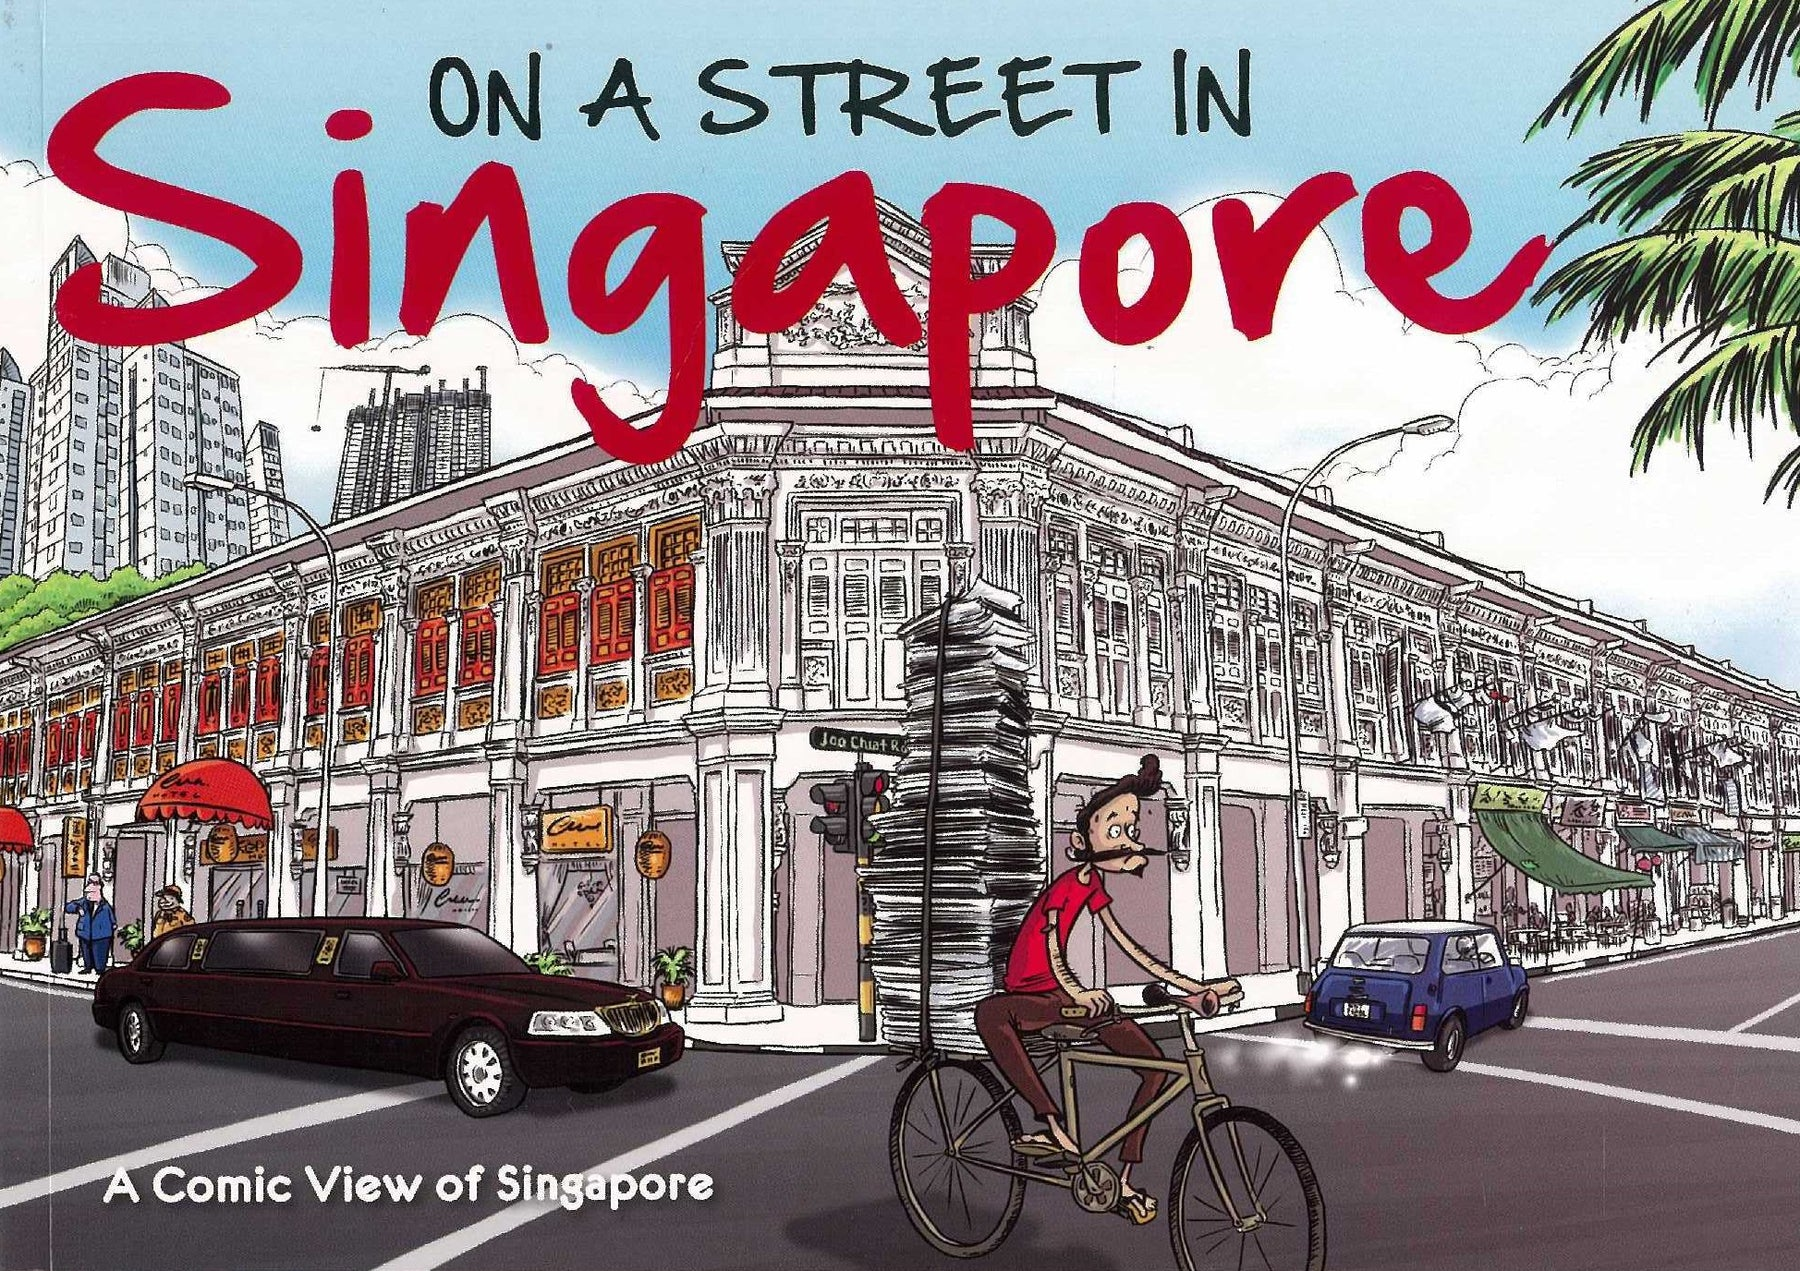 On a Street in Singapore: A Comic View of Singapore